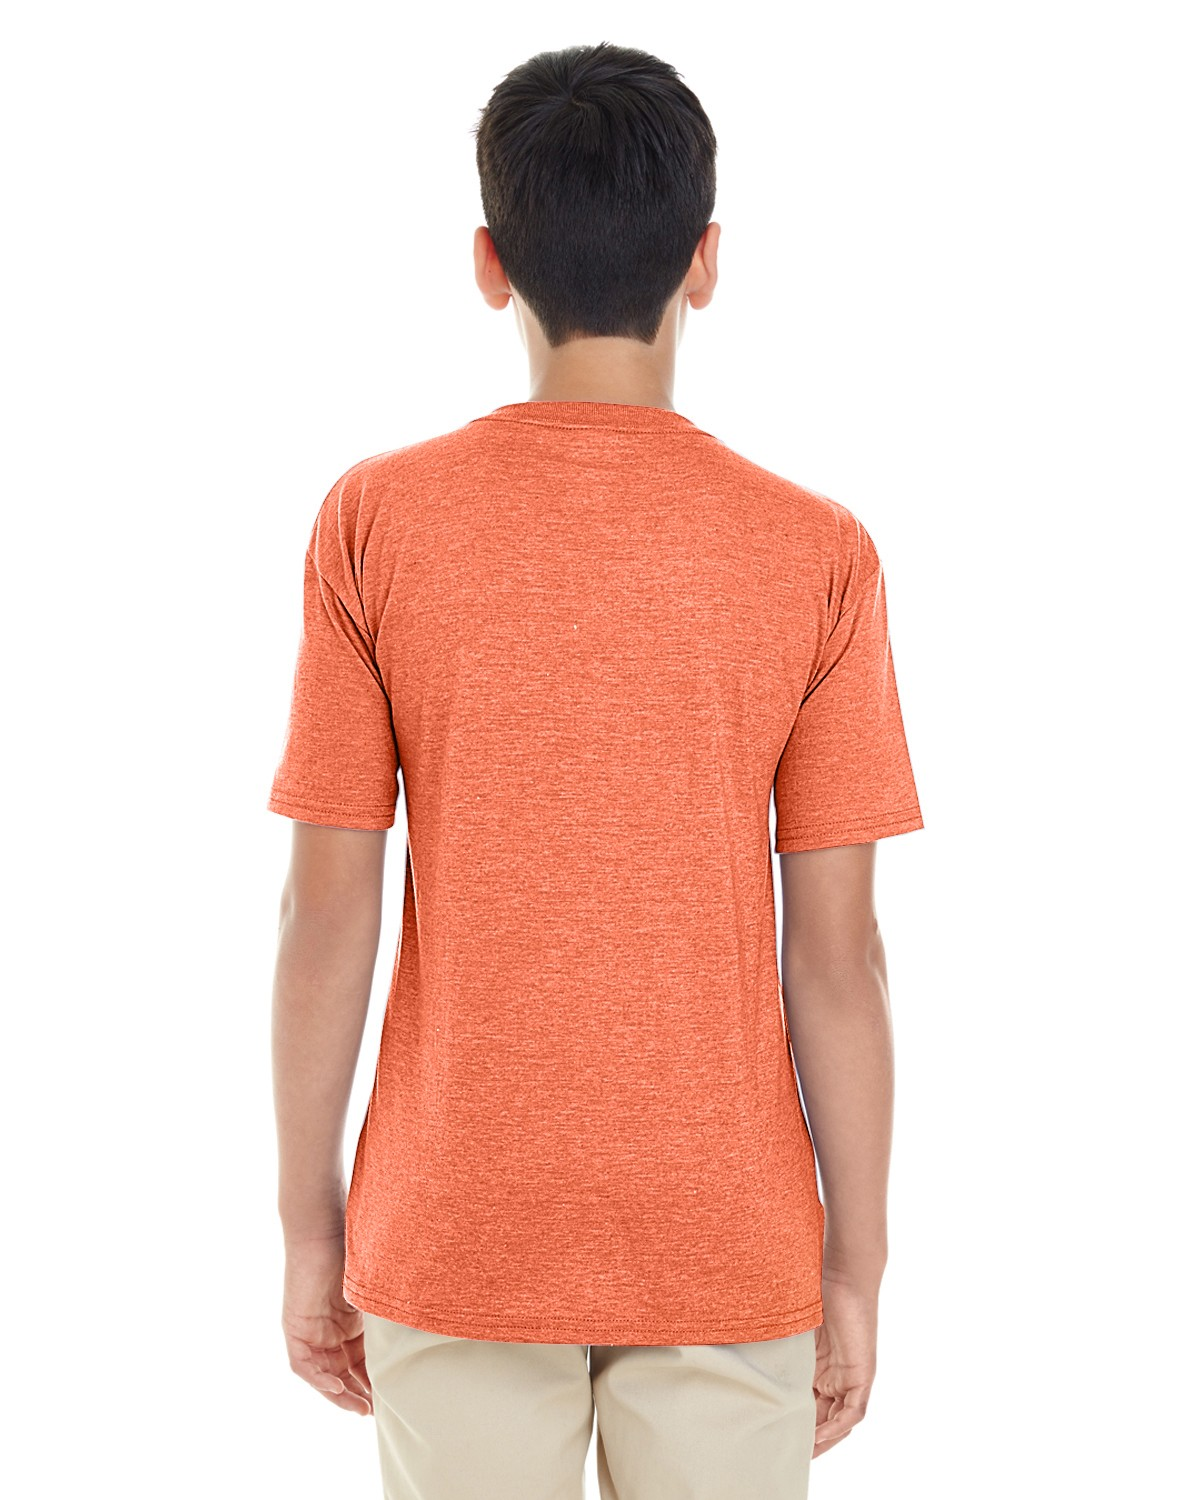 G645B Gildan HEATHER ORANGE